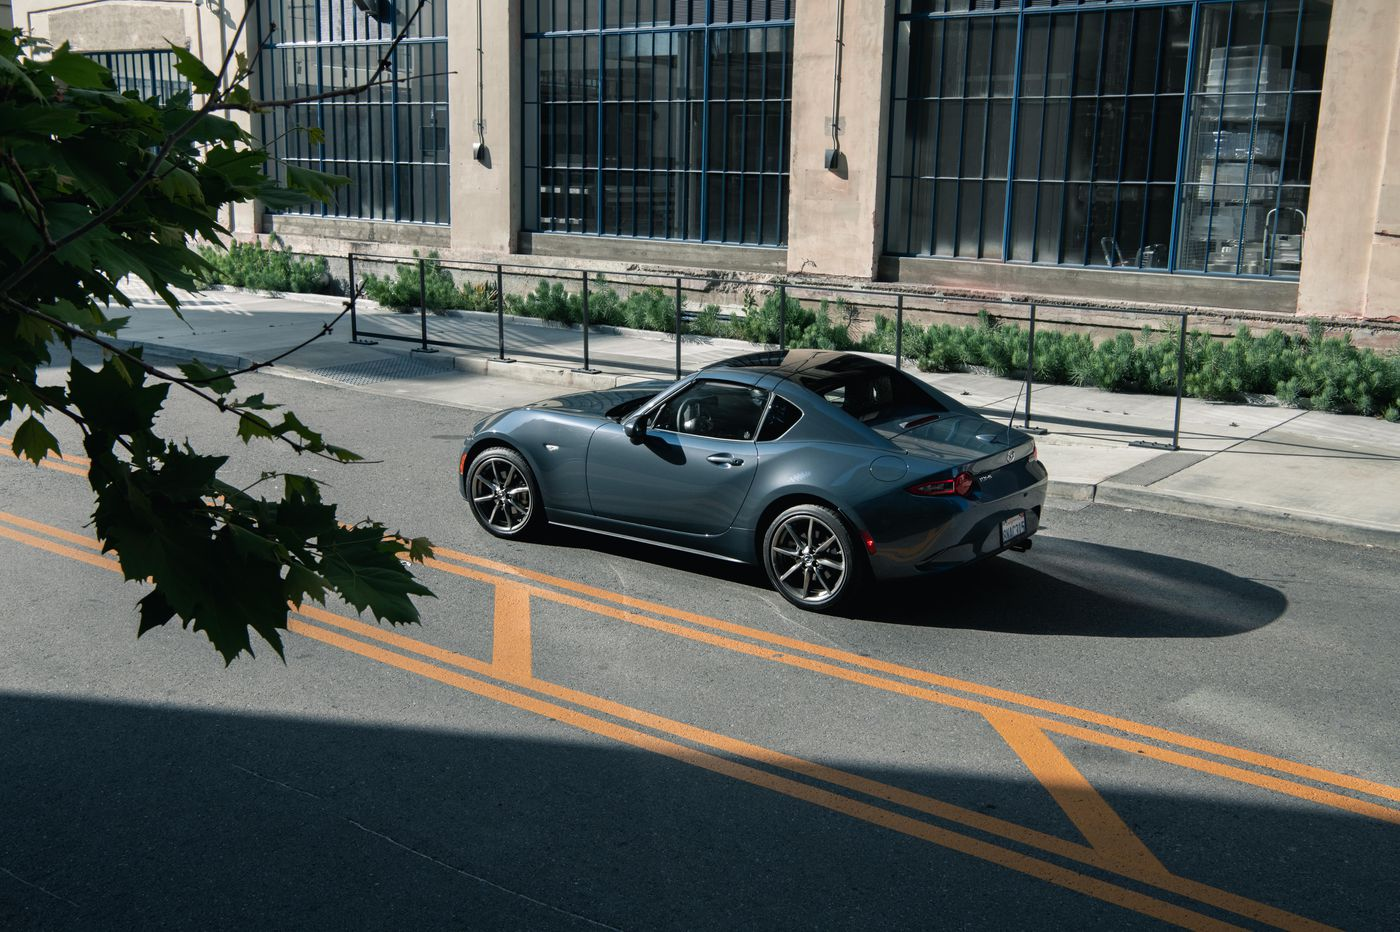 2020 Mazda MX-5 RF still means a lot of fun and some summer sun